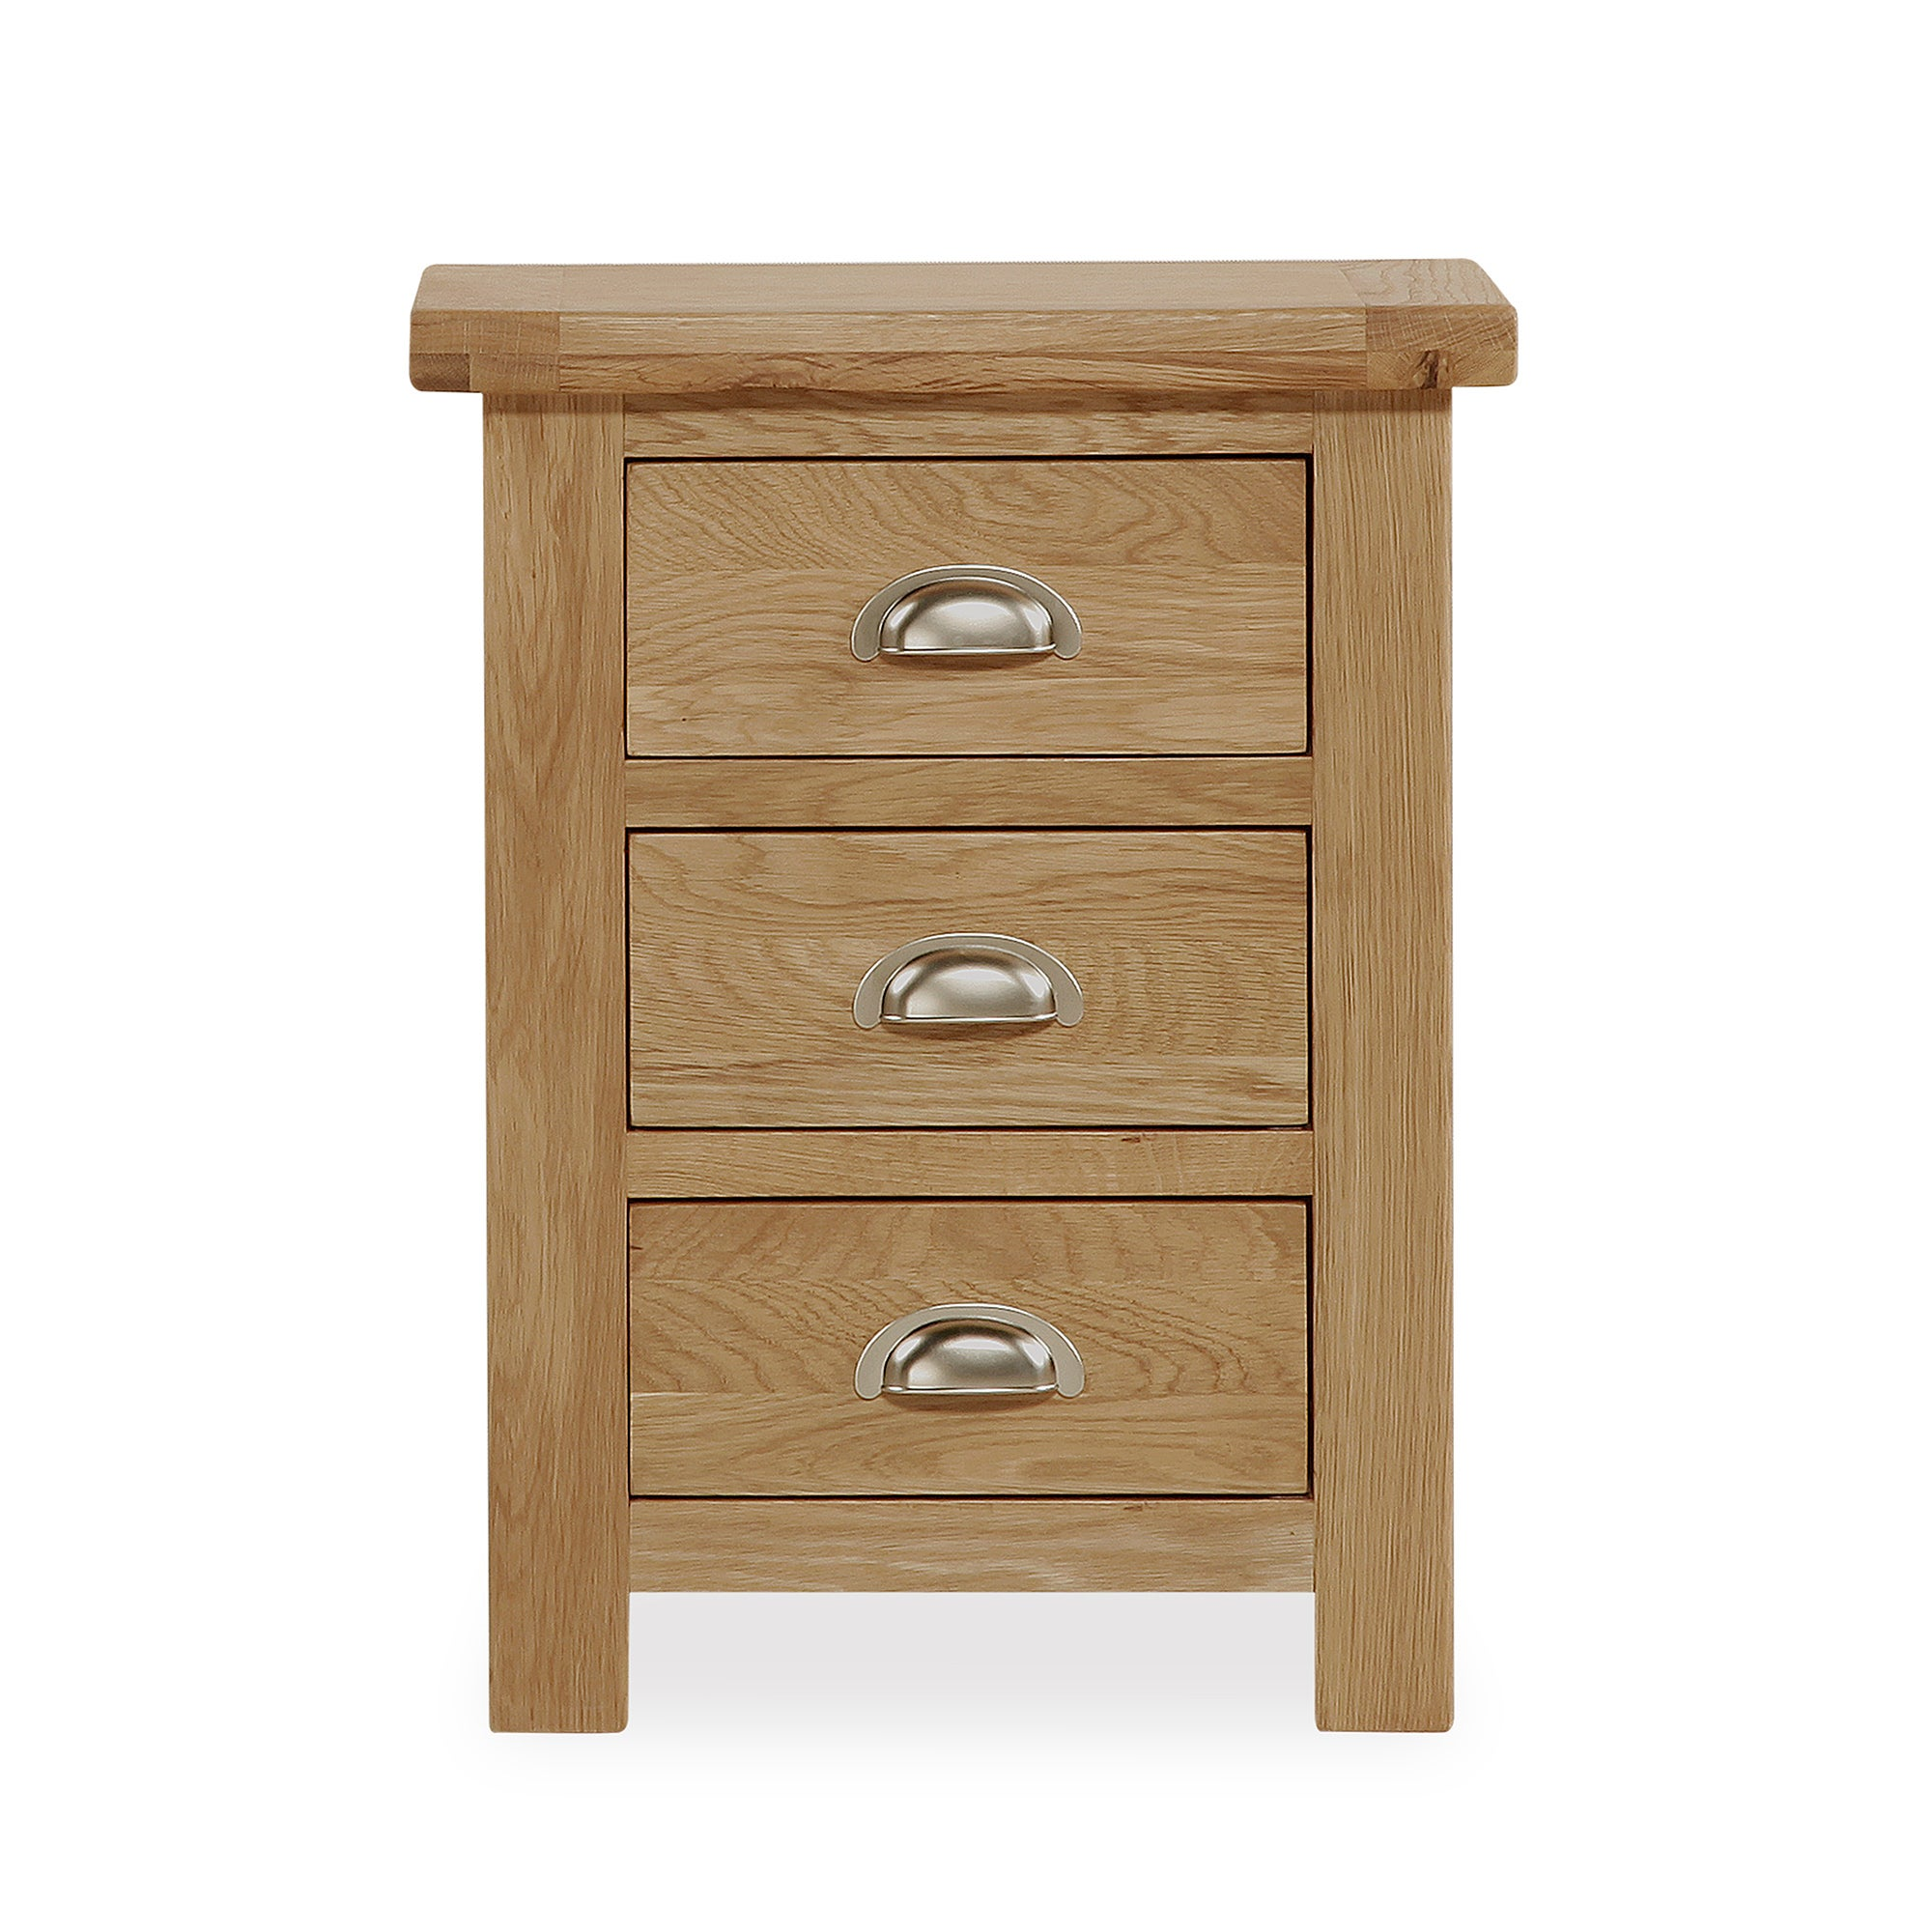 Photo of Oakley oak 3 drawer bedside table light brown / natural